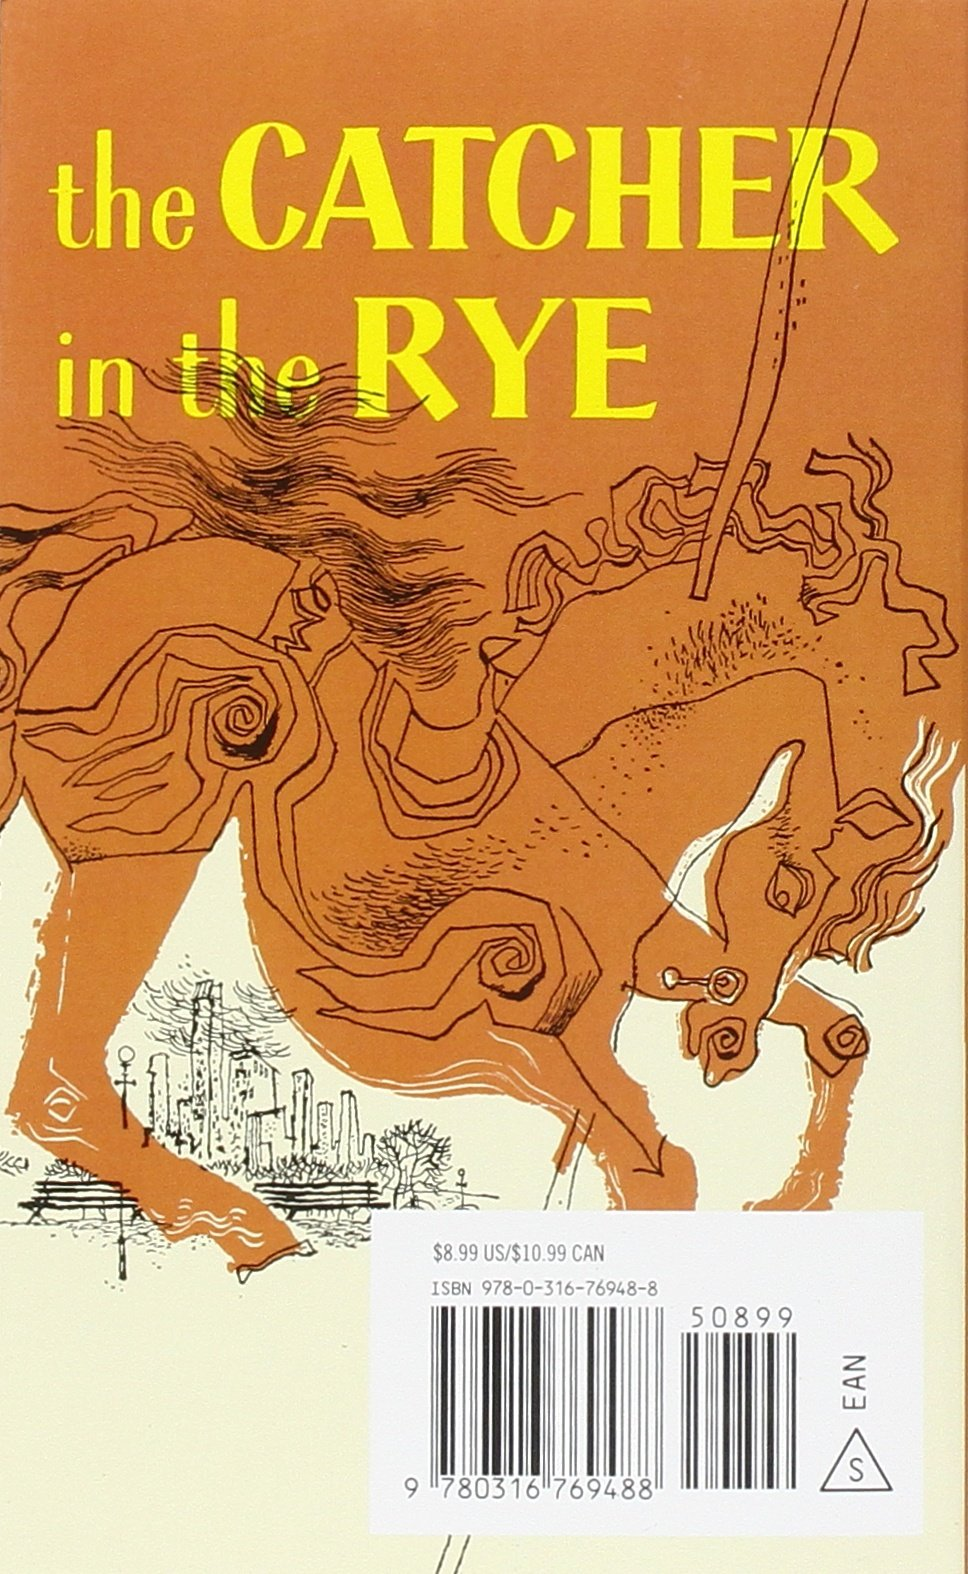 catcher in the rye essays j d salinger s the catcher in the rye  com the catcher in the rye 9780316769488 j d salinger com the catcher in the rye 9780316769488